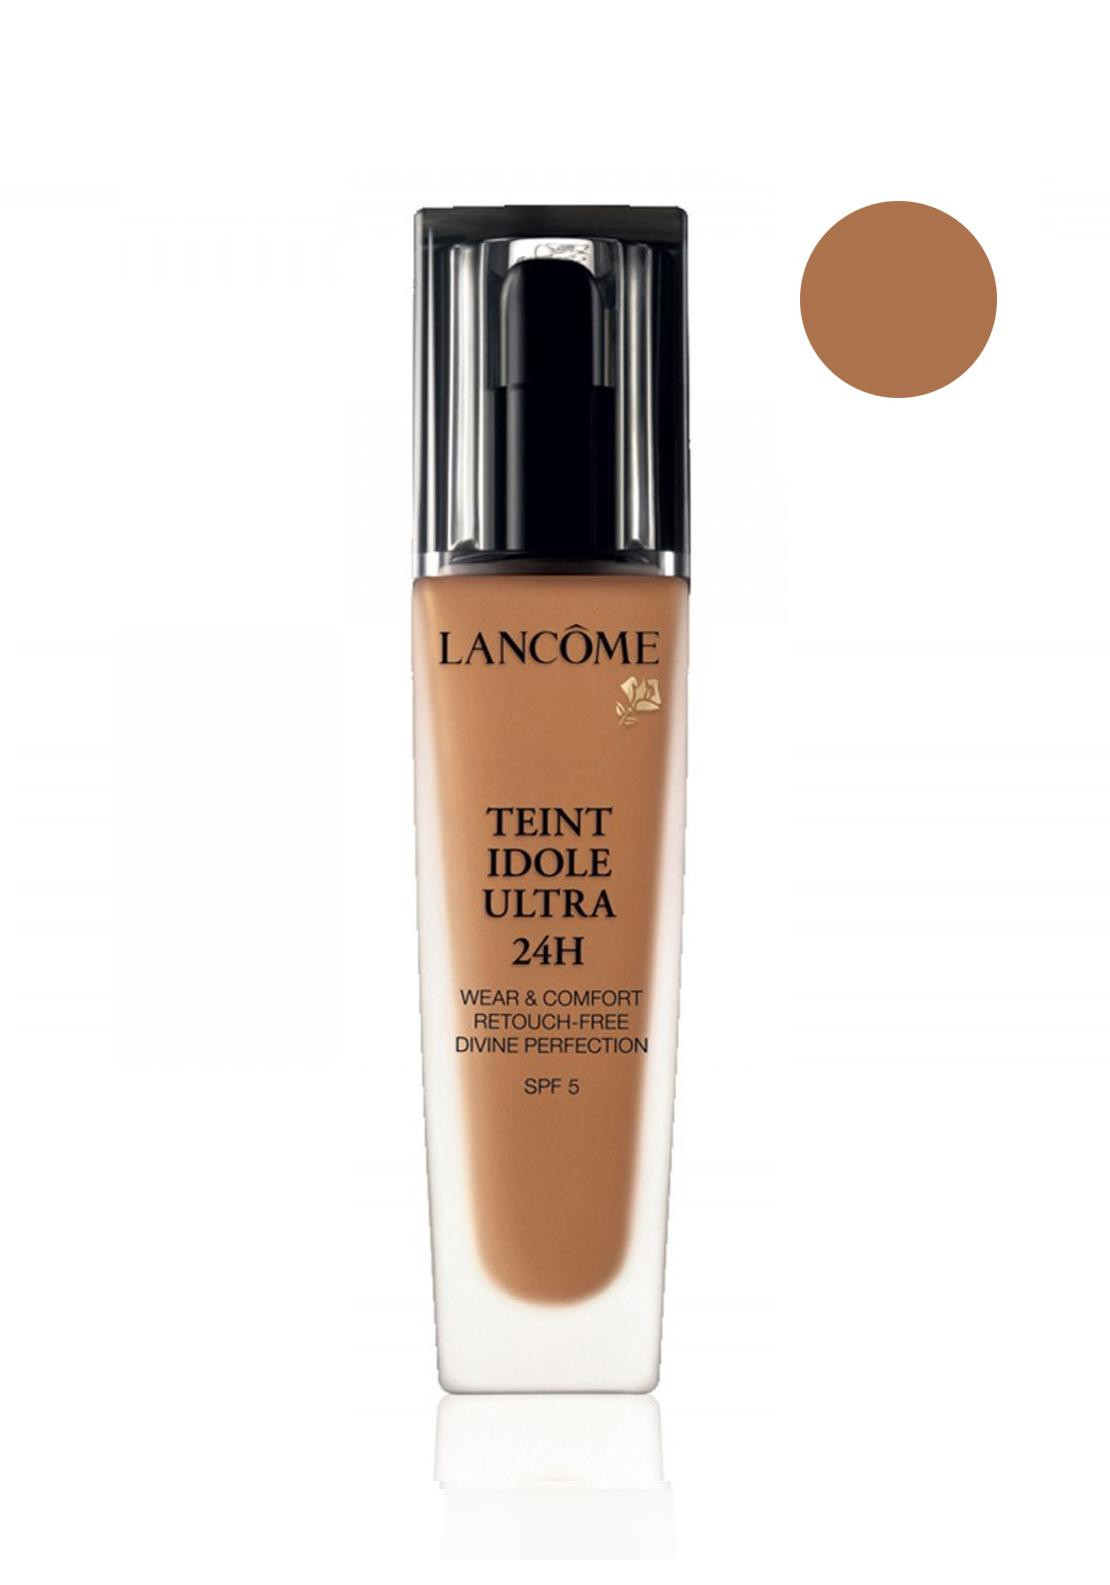 Lancome Teint Idole Ultra Foundation, Lancome Muscade 30ml